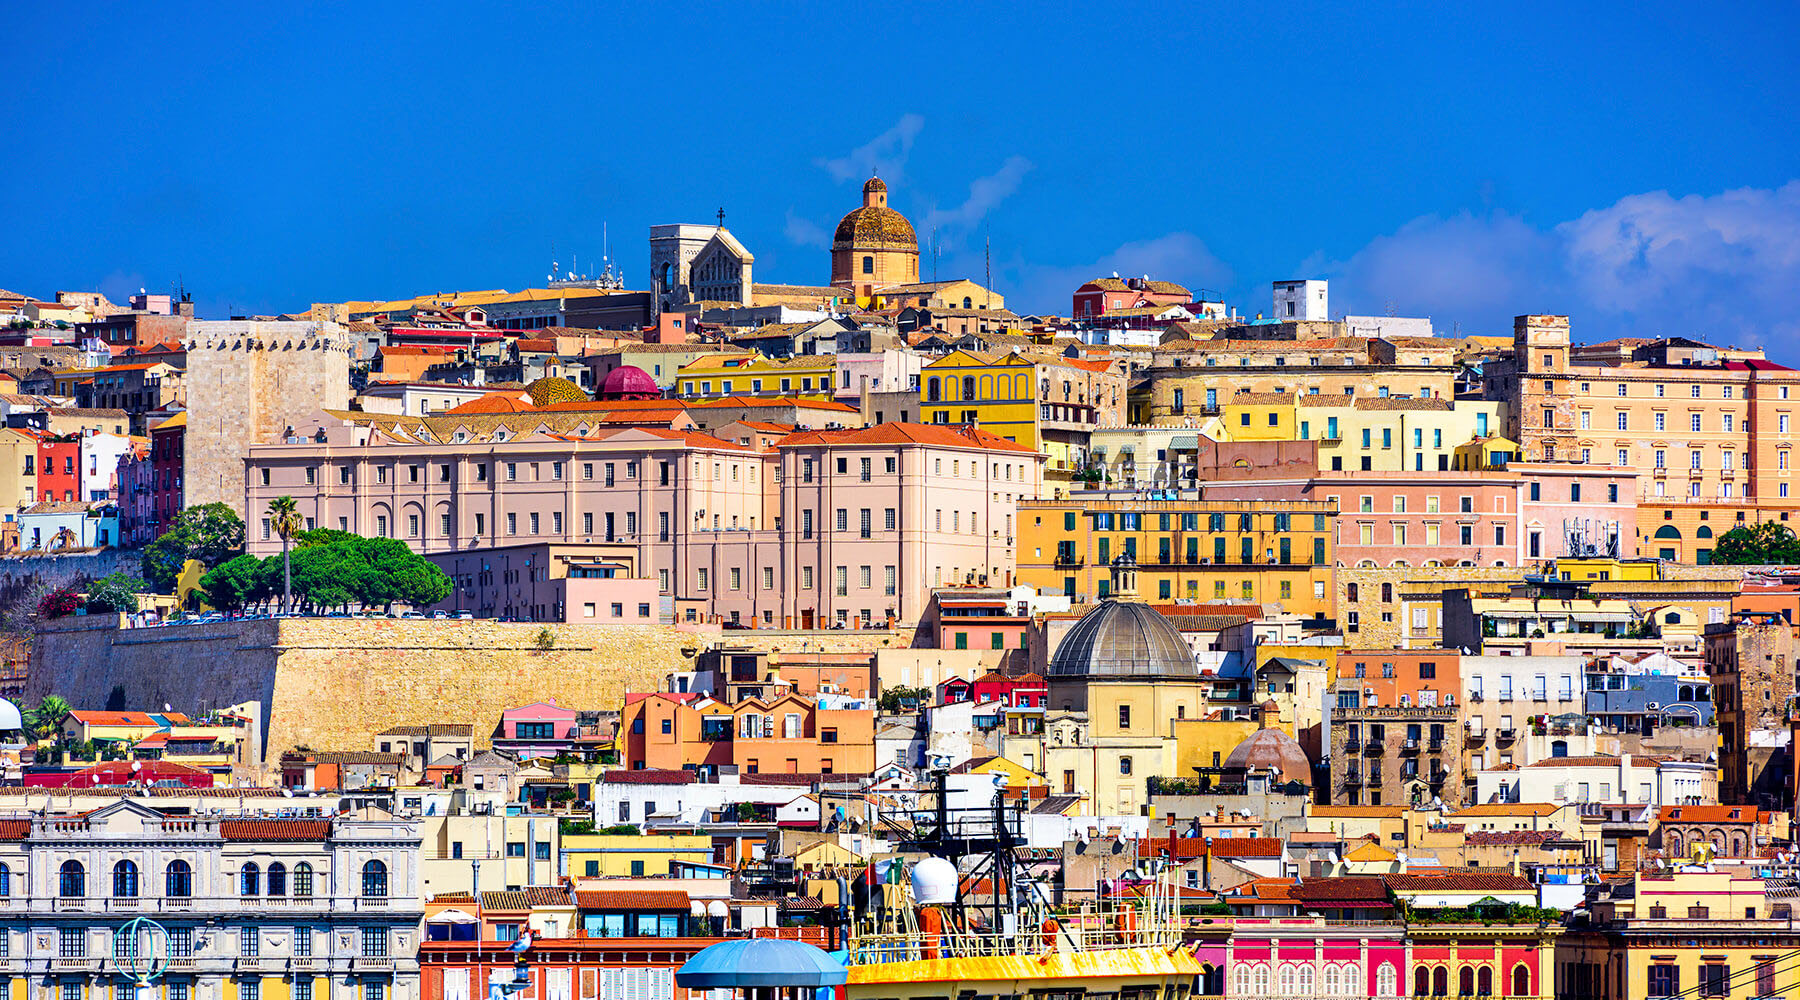 Colorful buildings in Cagliari Sardinia, Italy